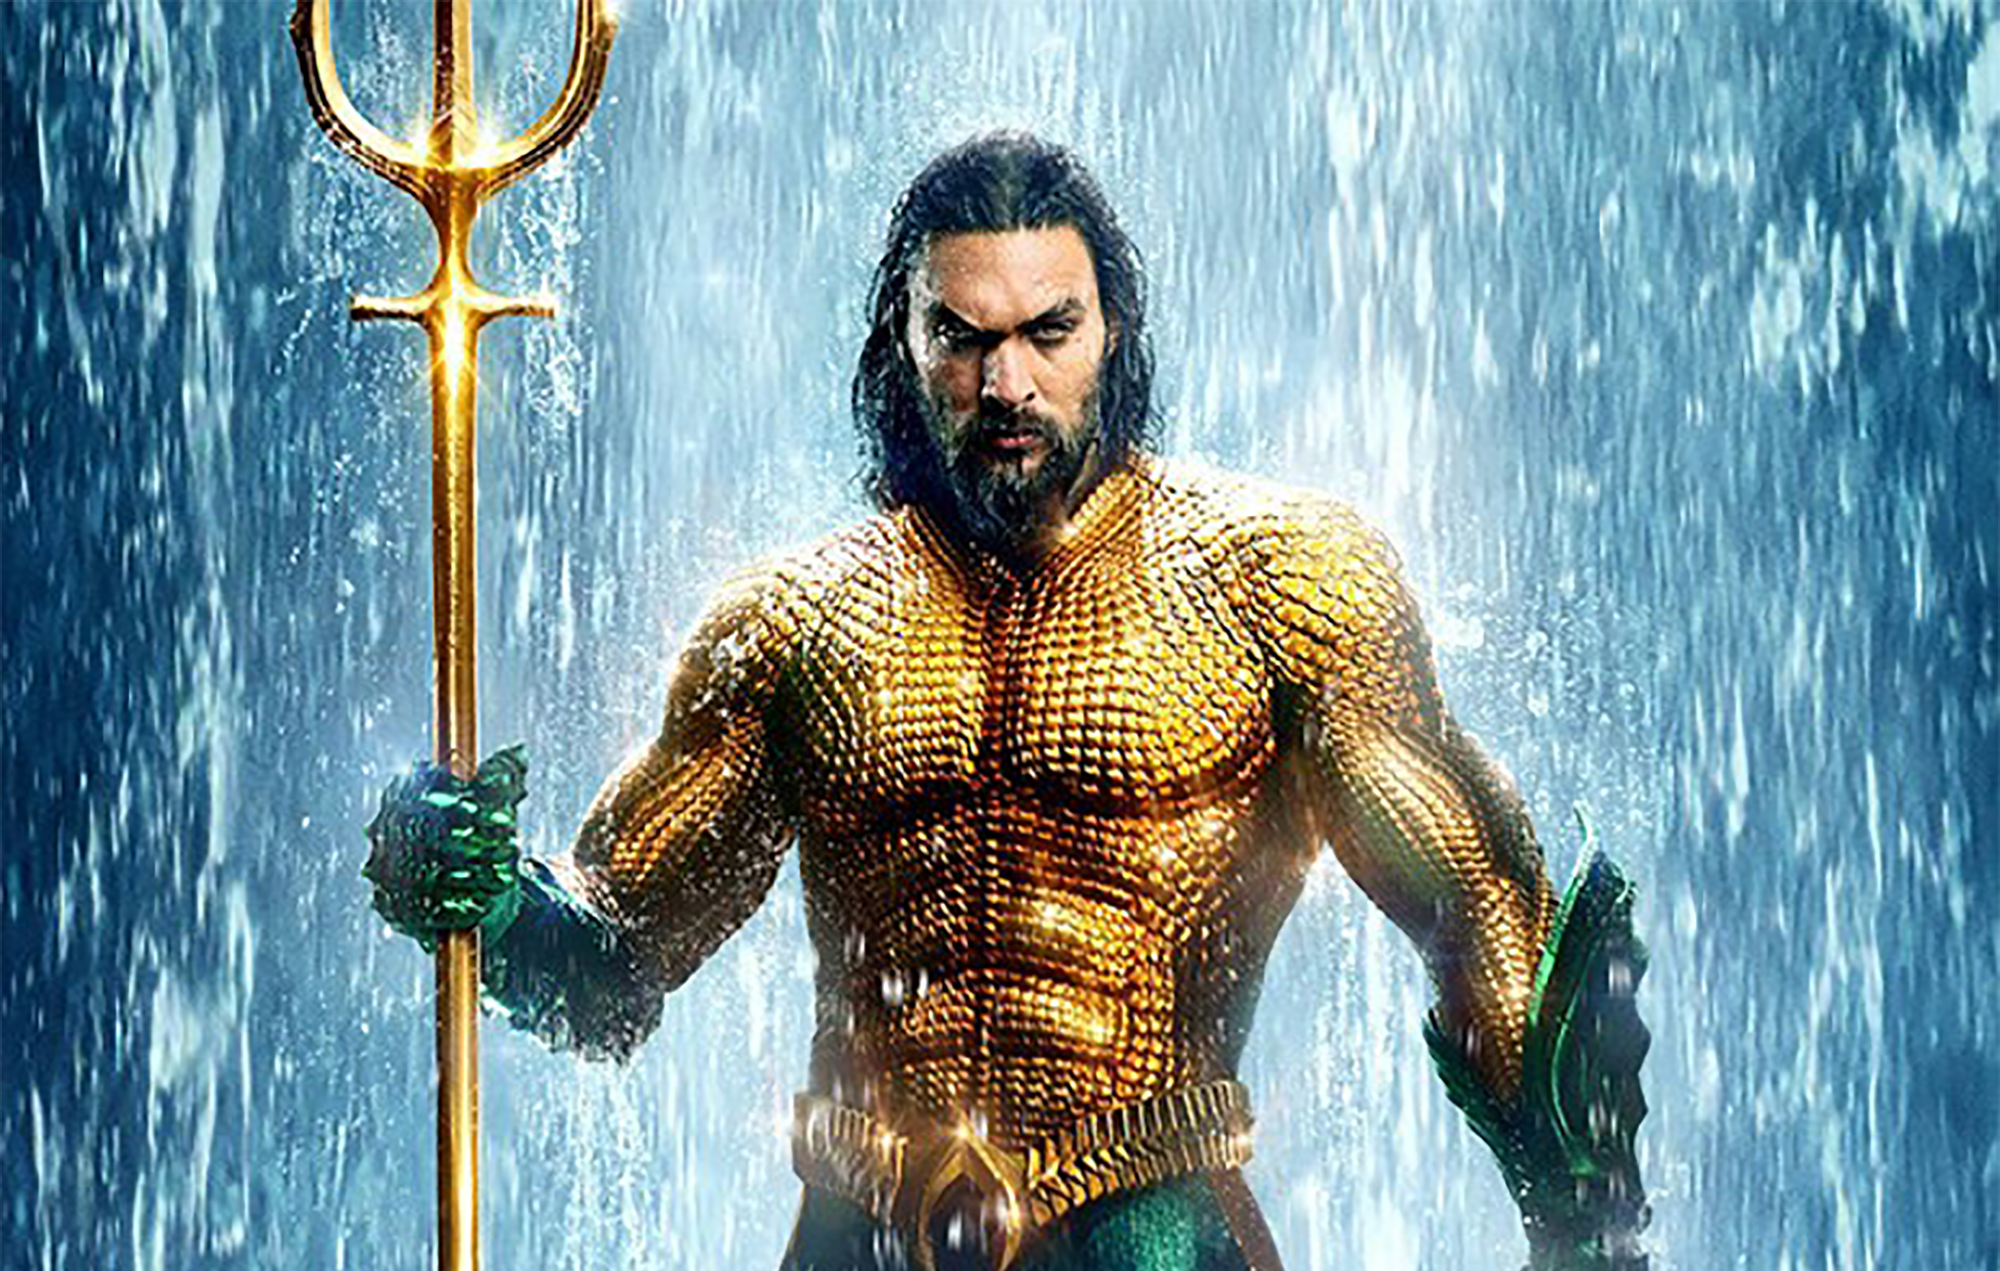 Jason Momoa sends Aquaman trident to young fan with brain cancer